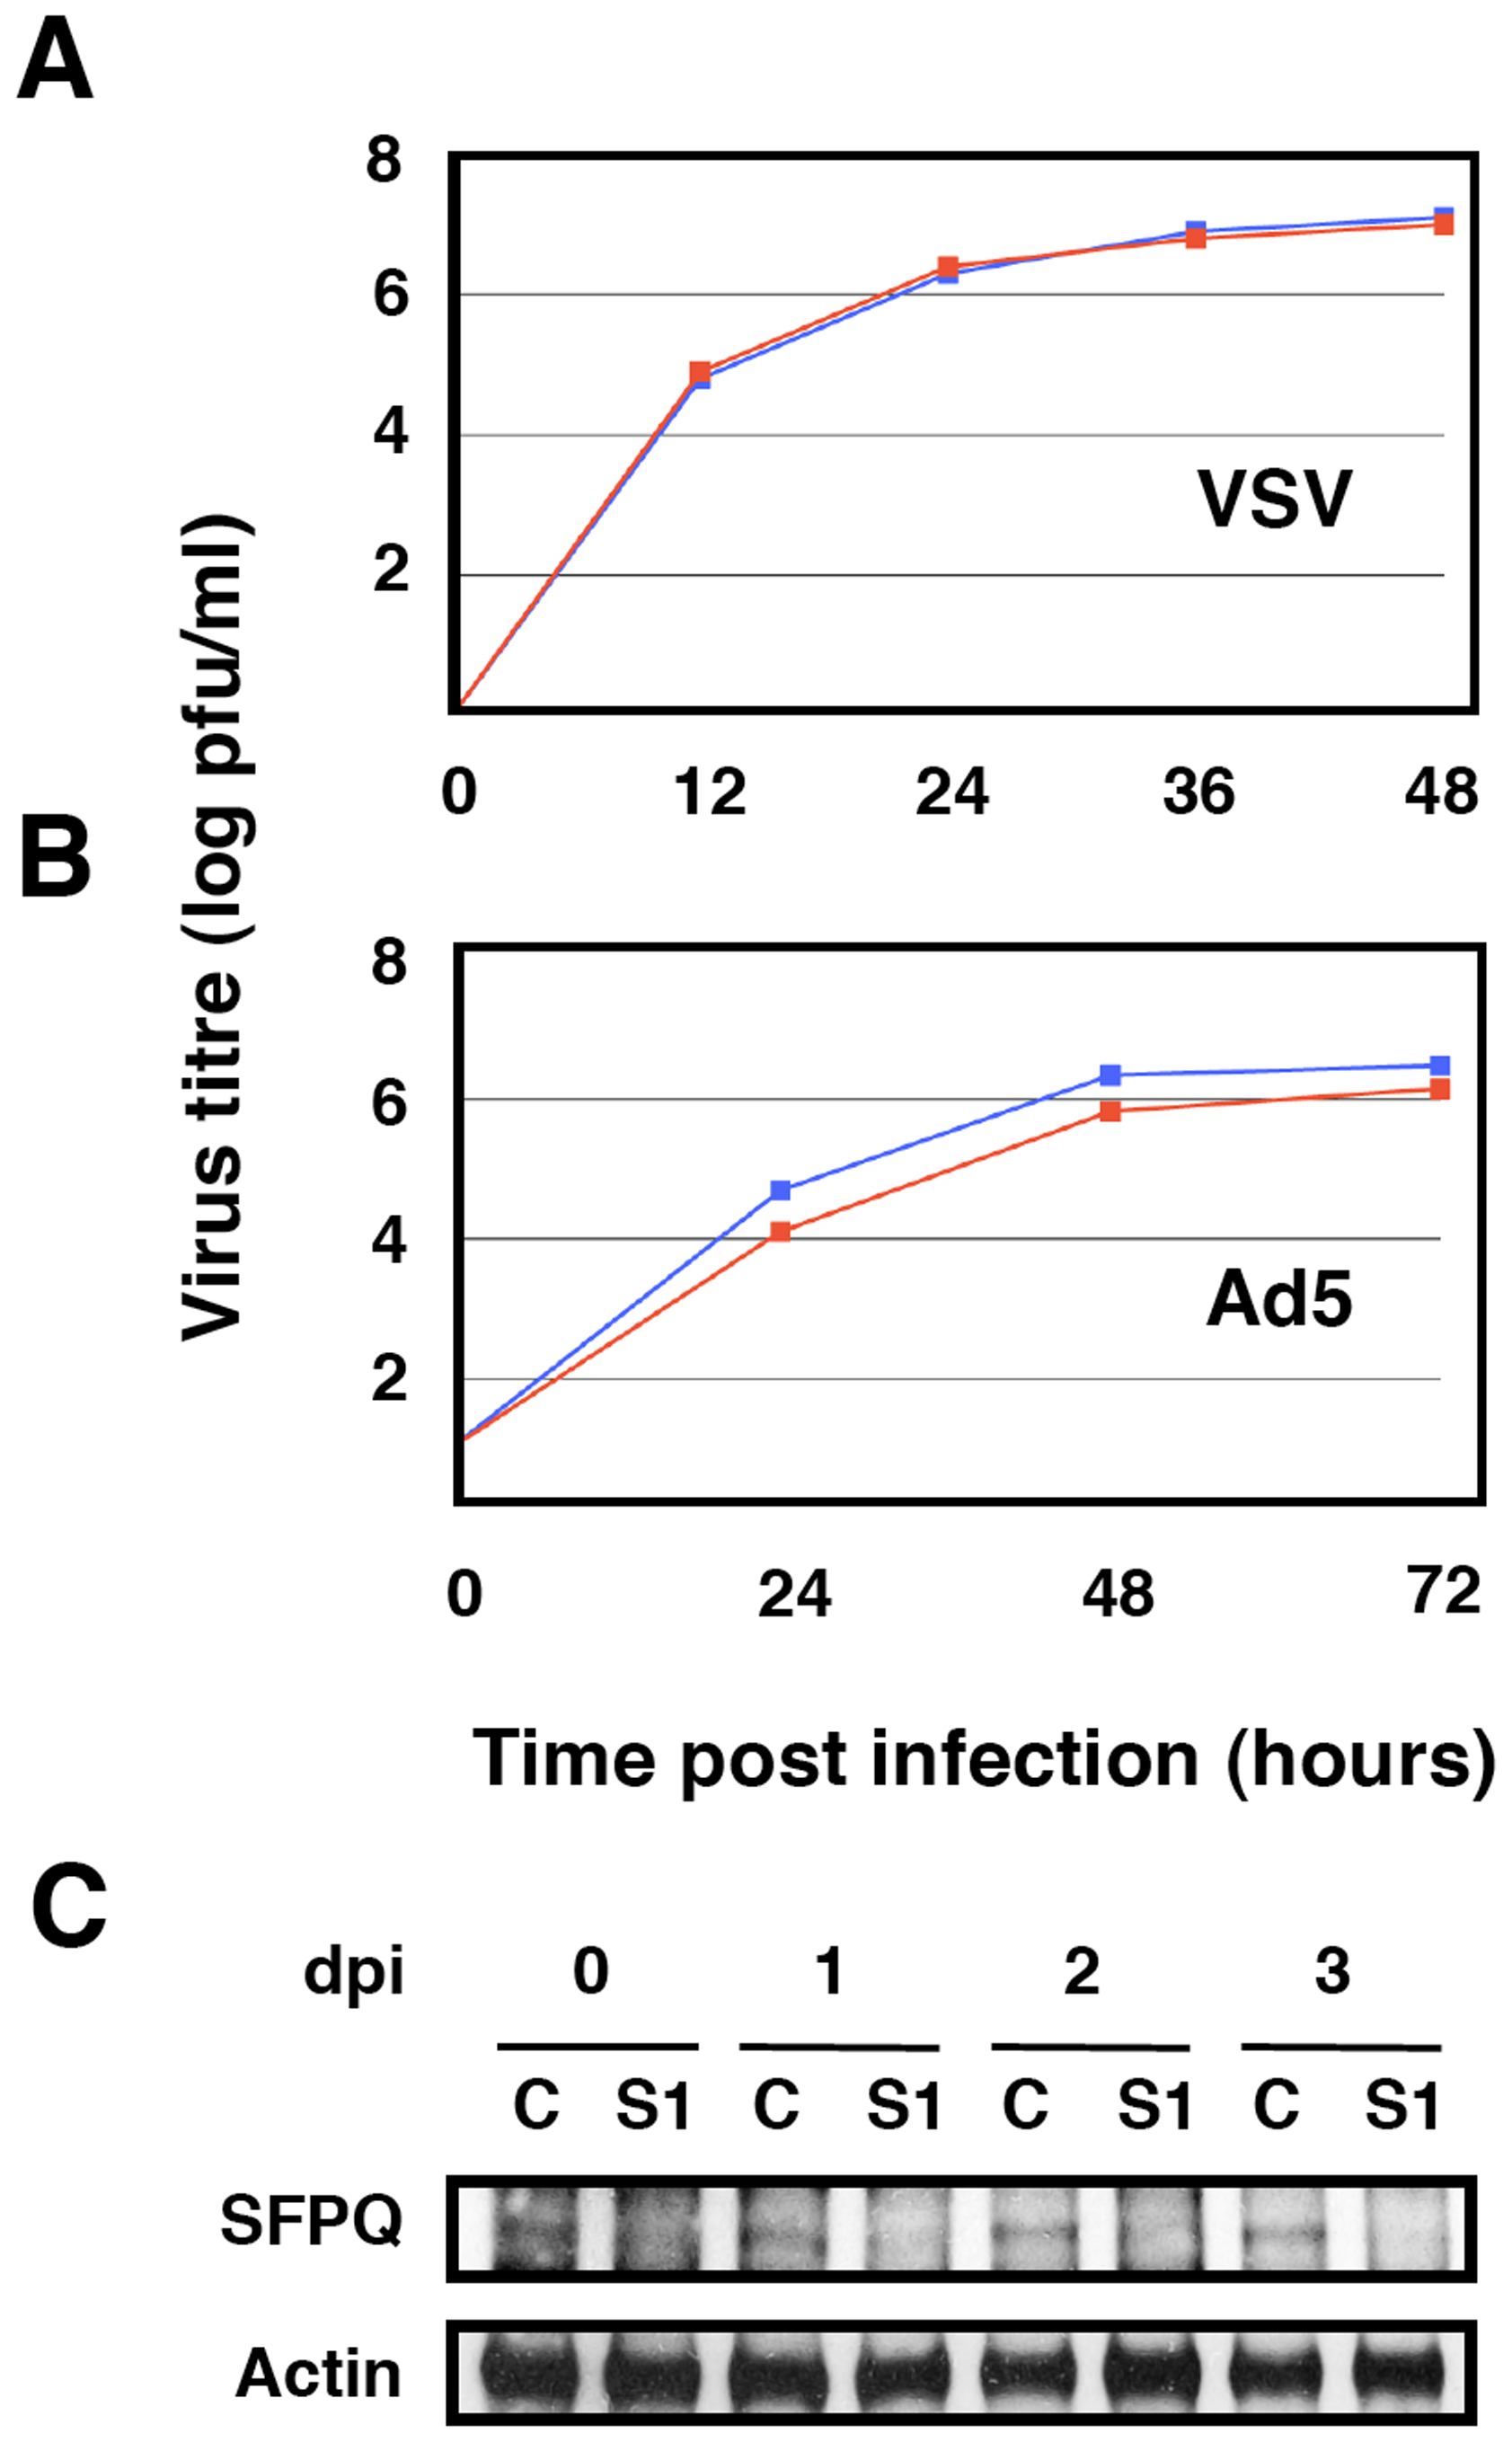 Kinetics of VSV and Ad5 multiplication in SFPQ/PSF-silenced cells.